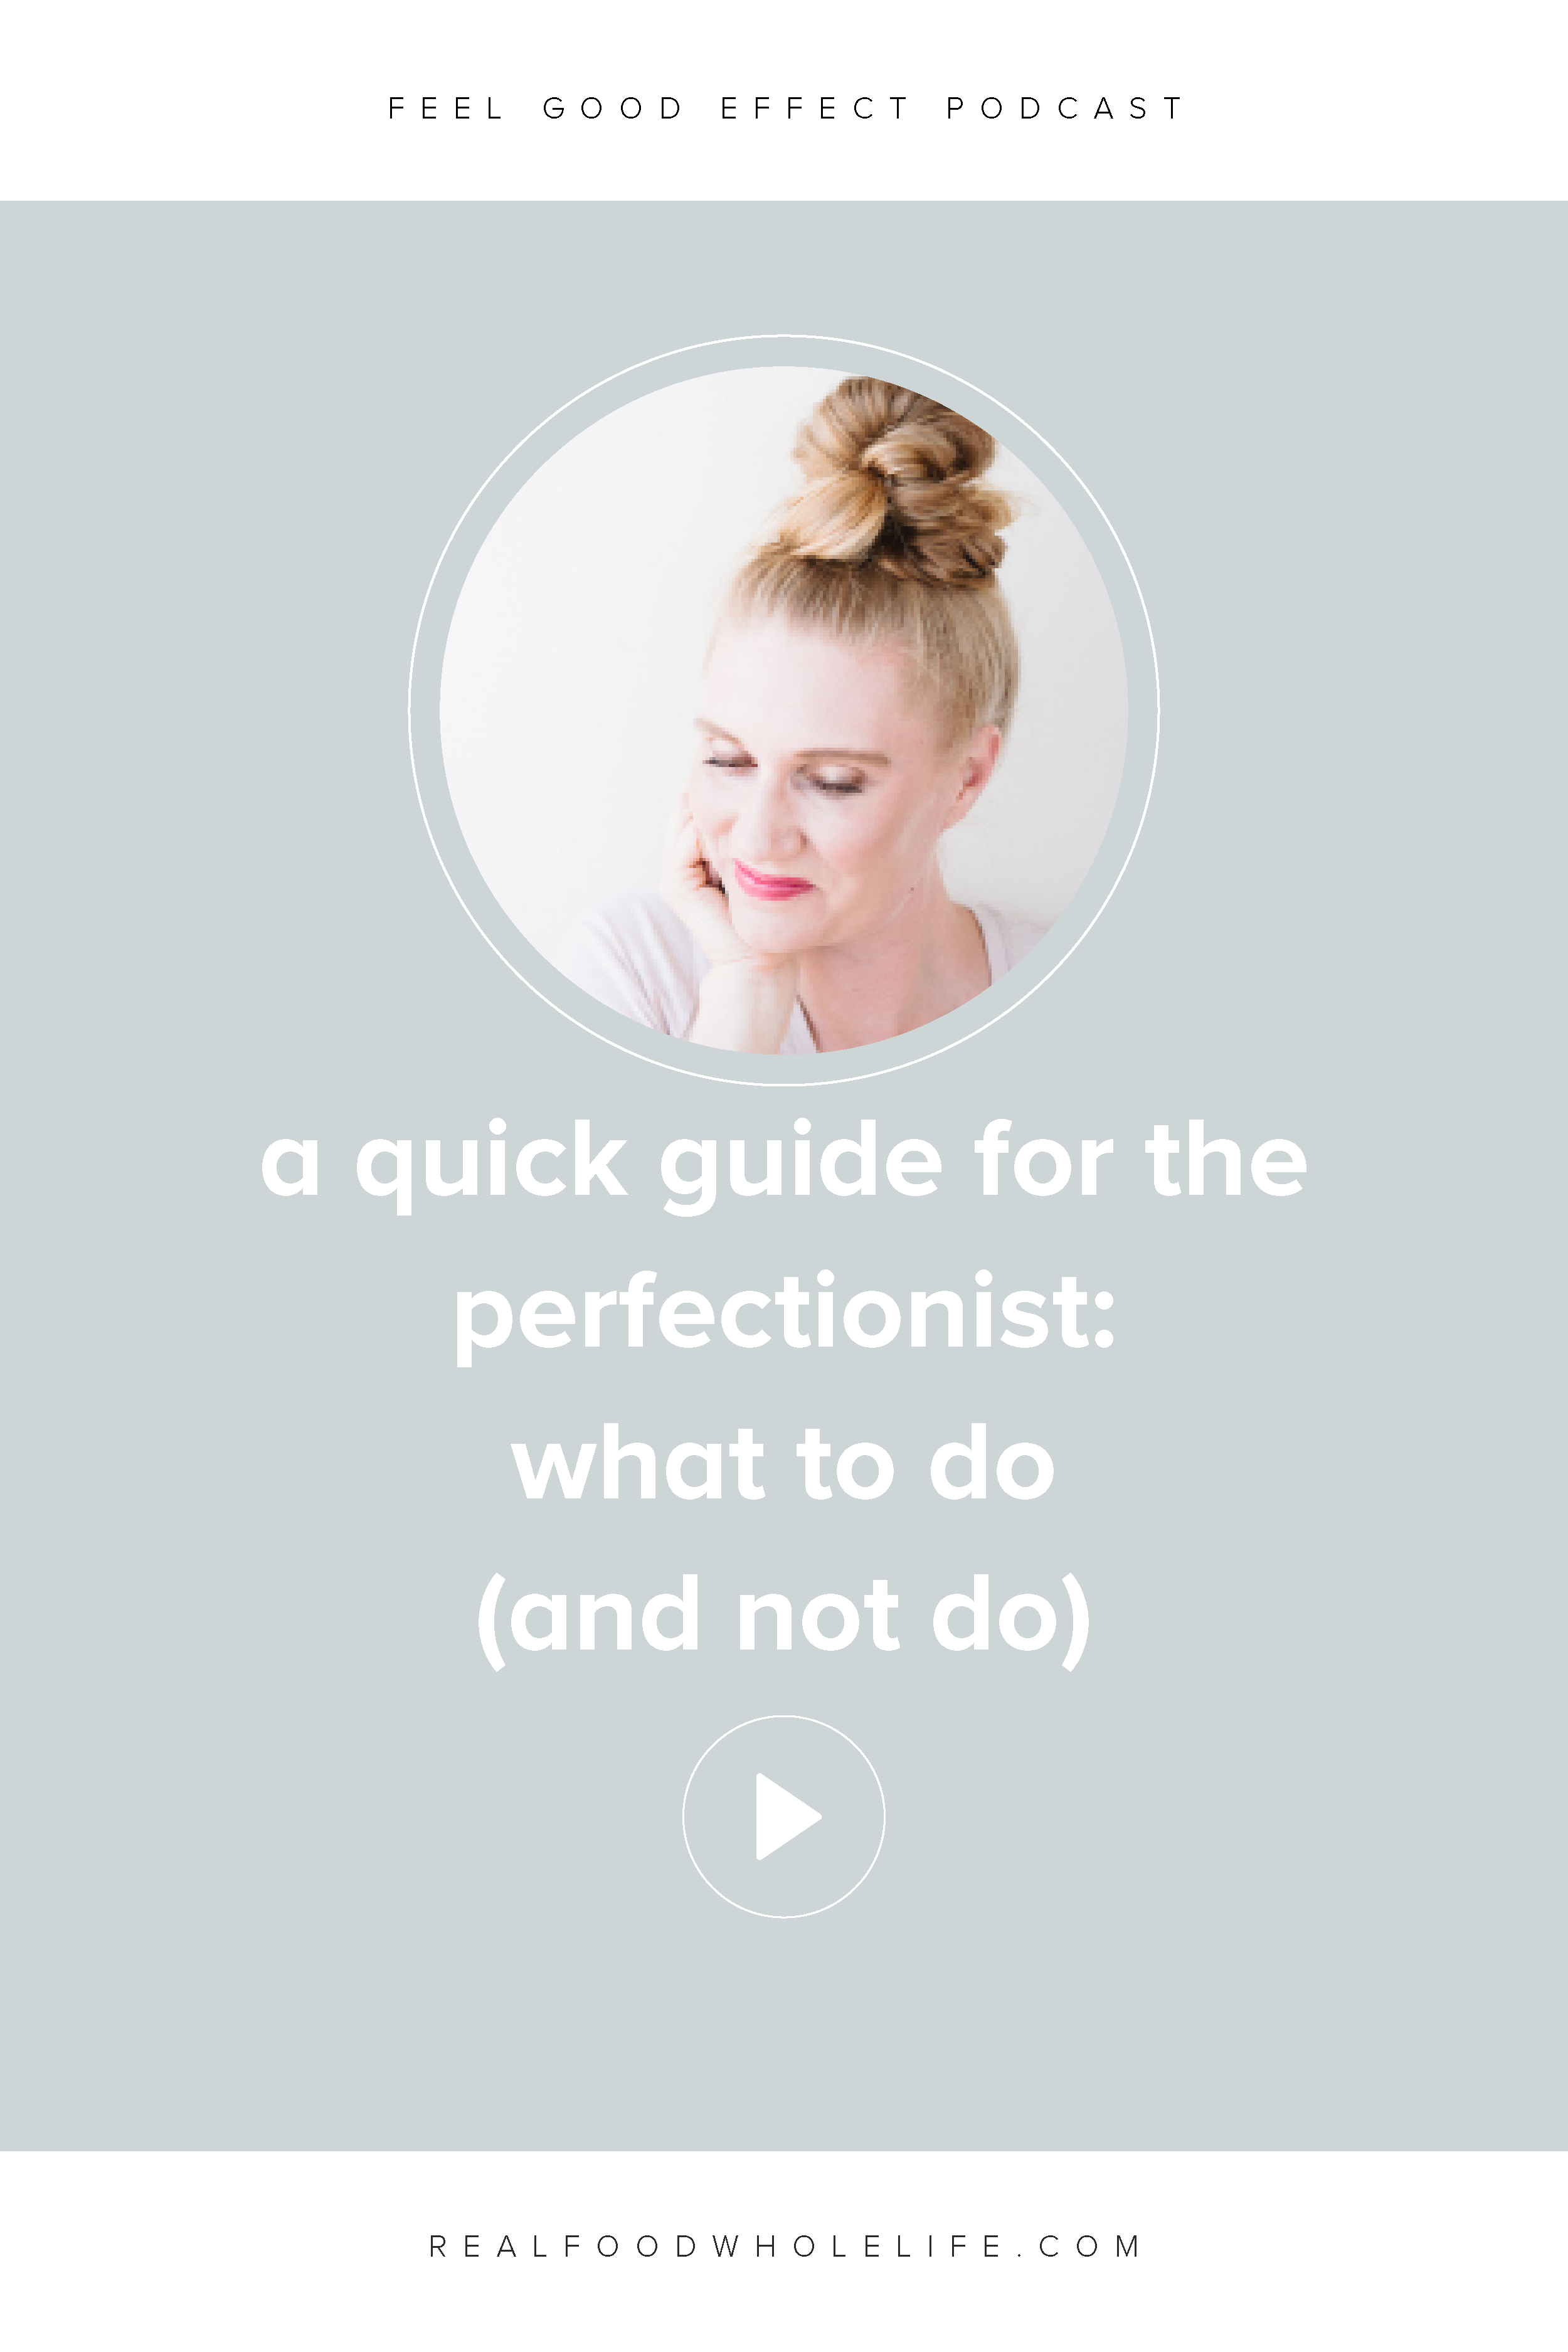 A Quick Guide for the Perfectionist: What to Do (and Not Do)